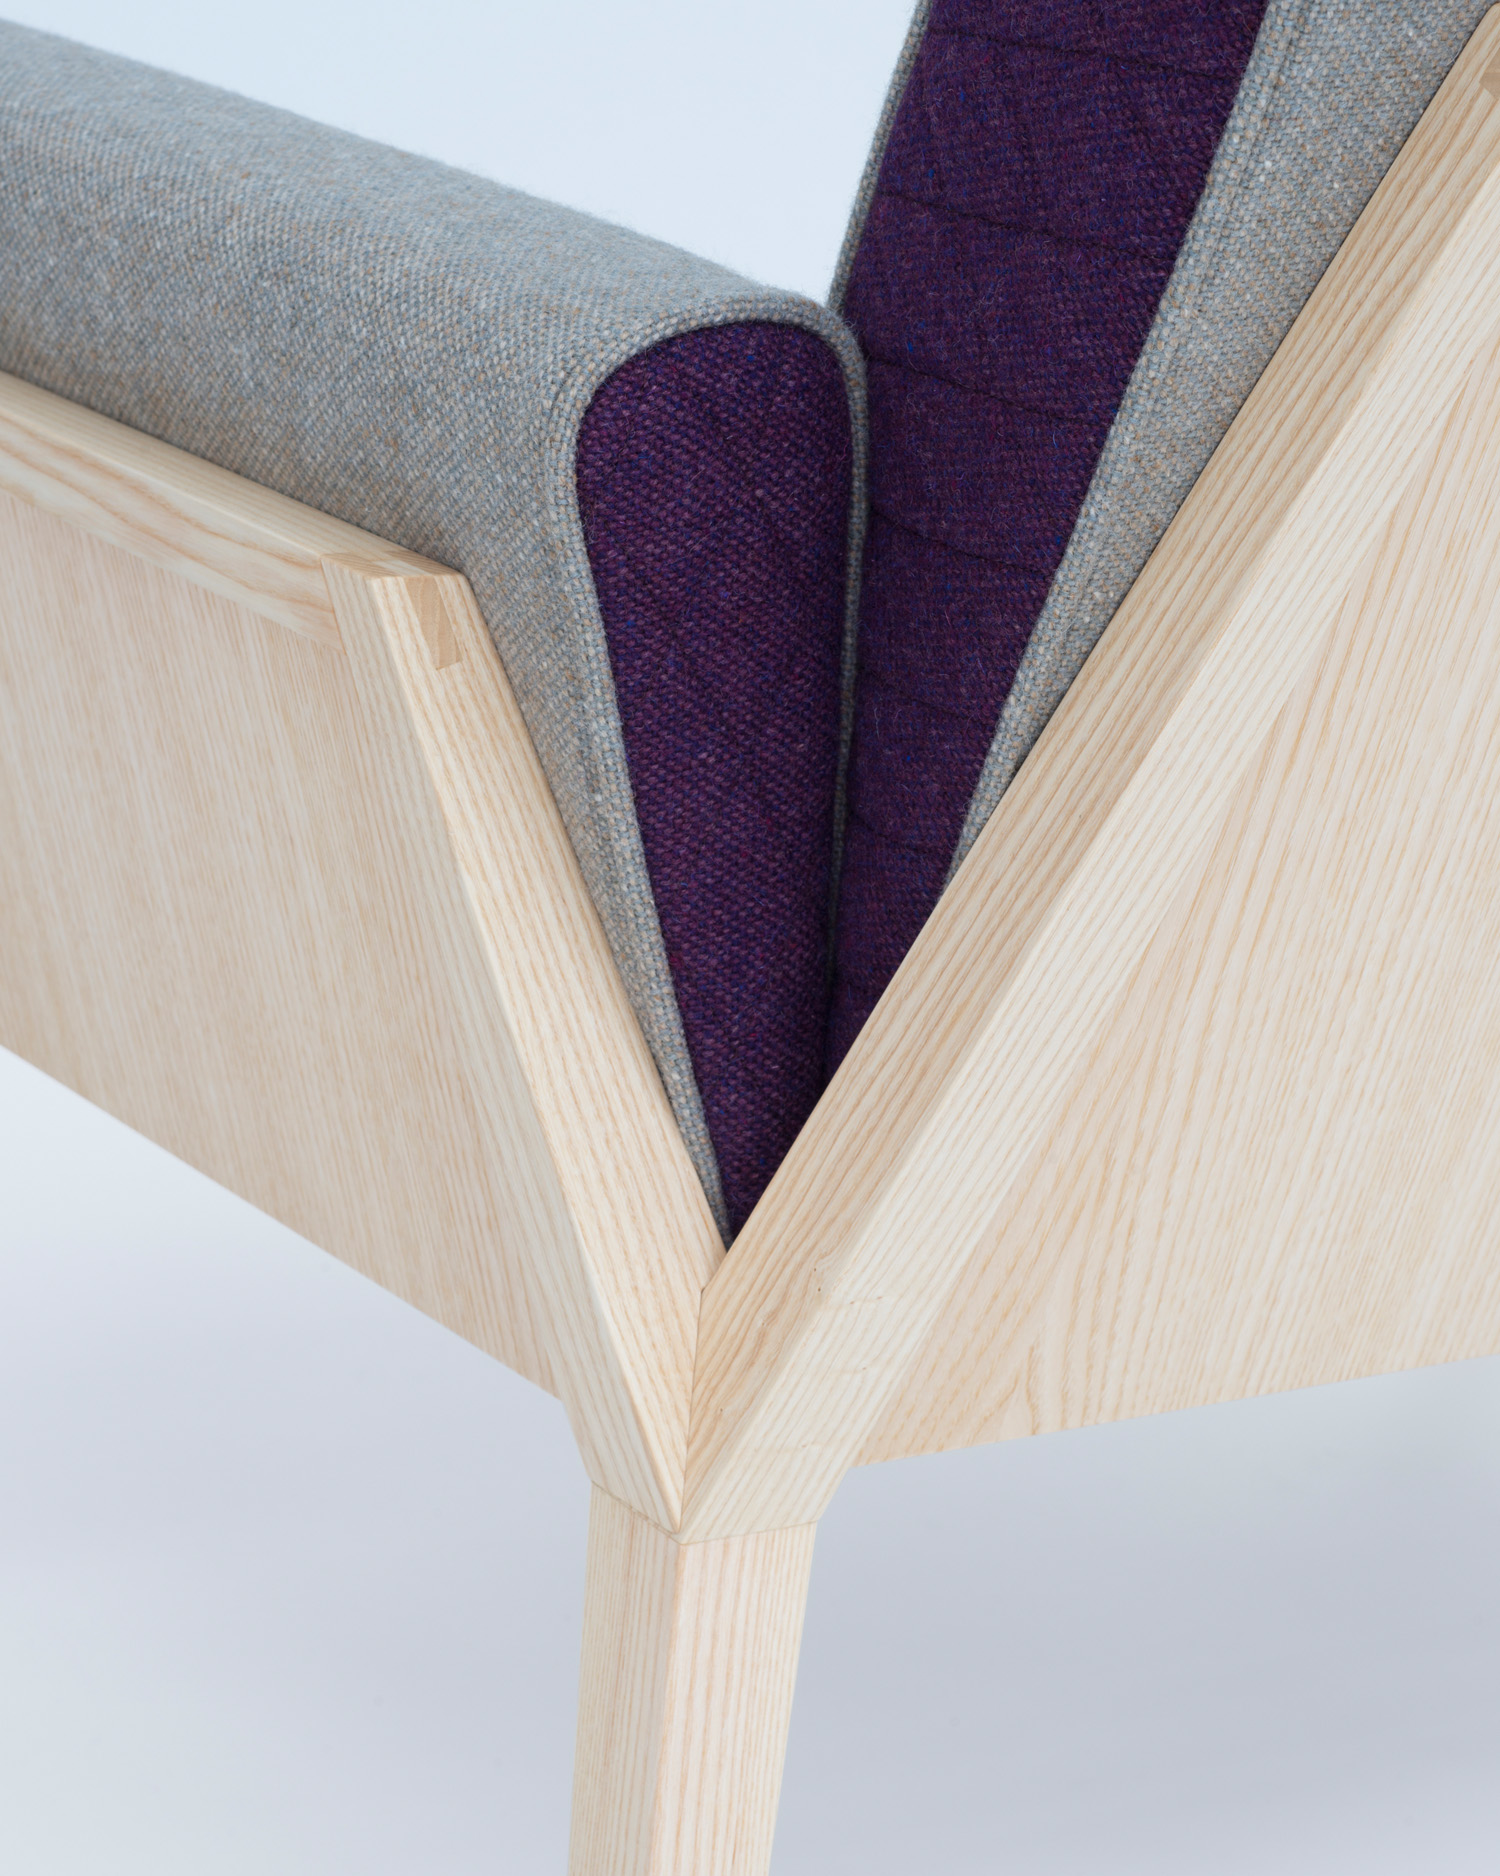 Æsh & Tweed detail armchair  Photography by Justin Barton